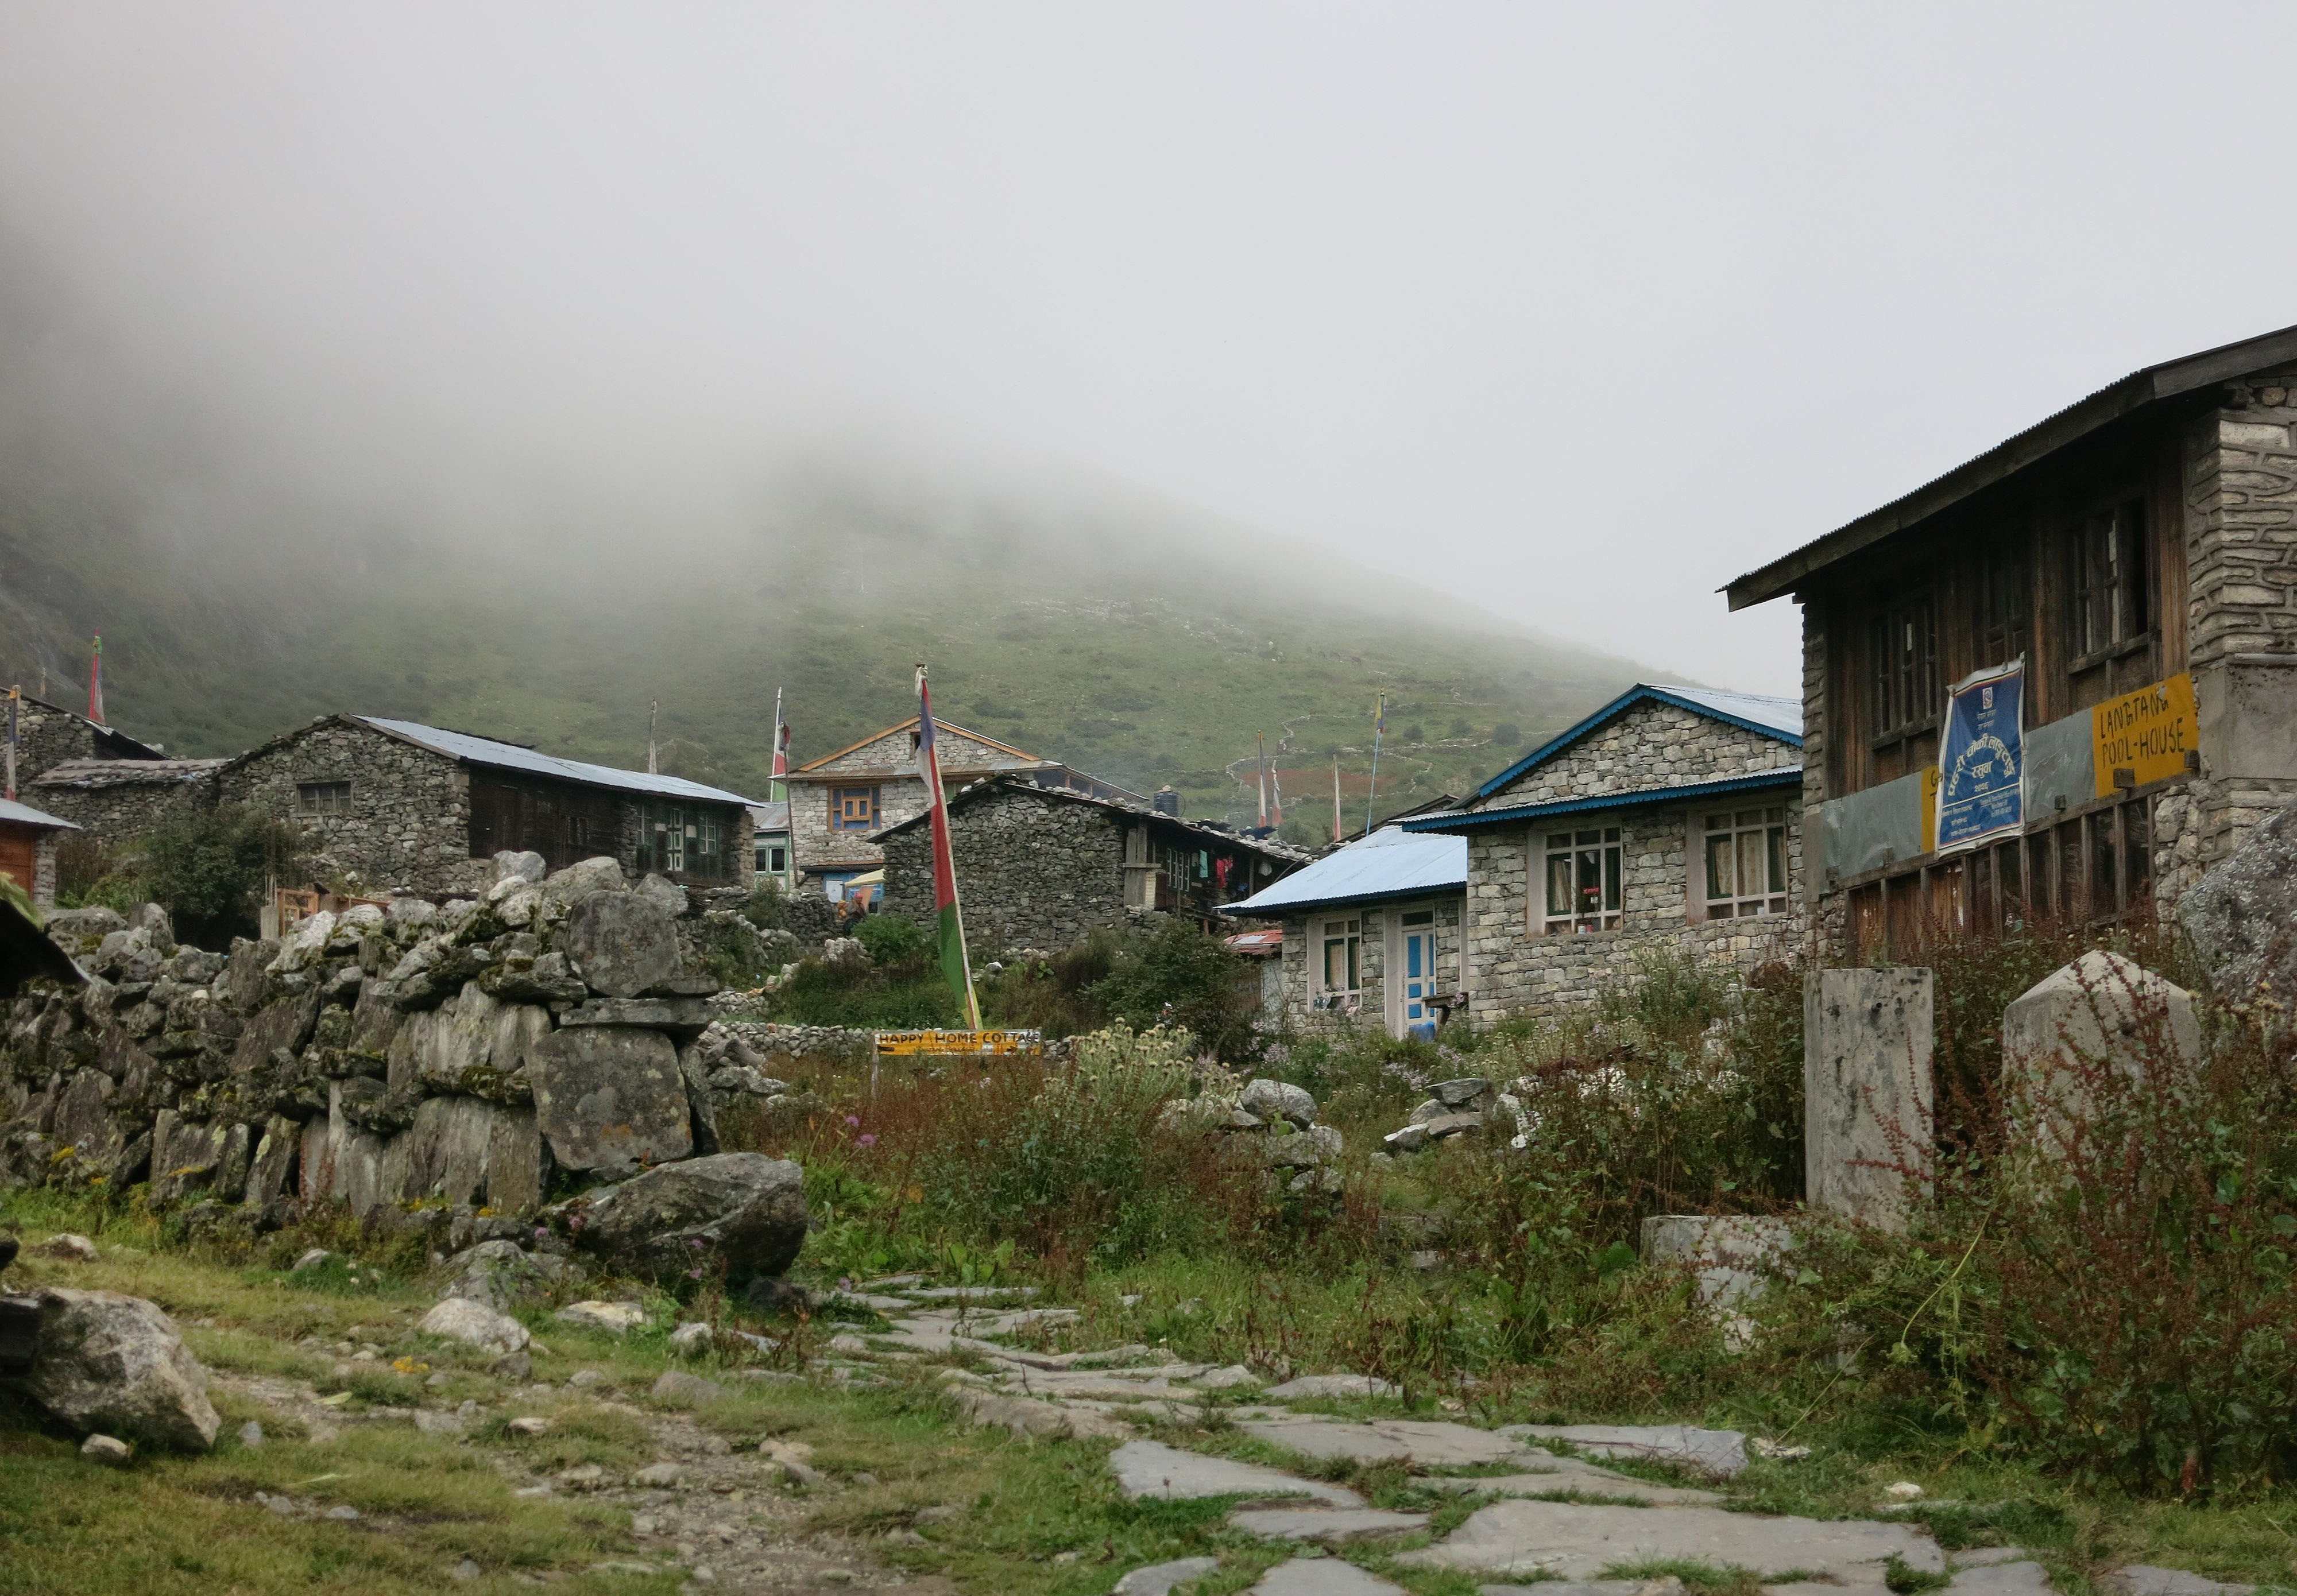 This photo taken on September 11, 2014 shows a general view of the village of Langtang, in the remote Nepalese district of Rasuwa bordering China's Tibet